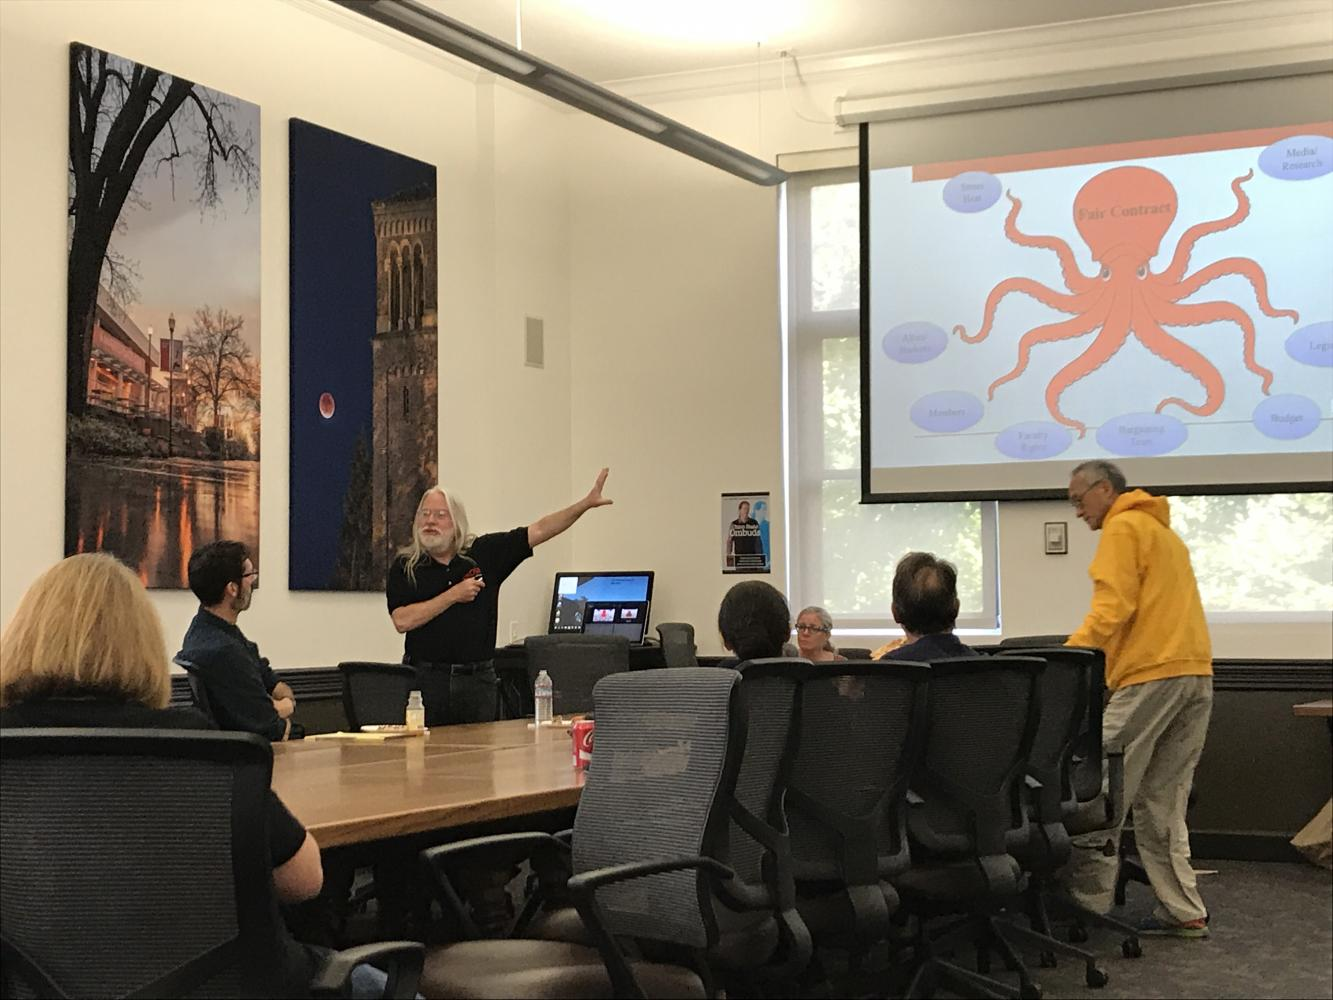 David Bradfield going over the tentative agreement using an octopus demonstration. Photo credit: Hannah Yeager